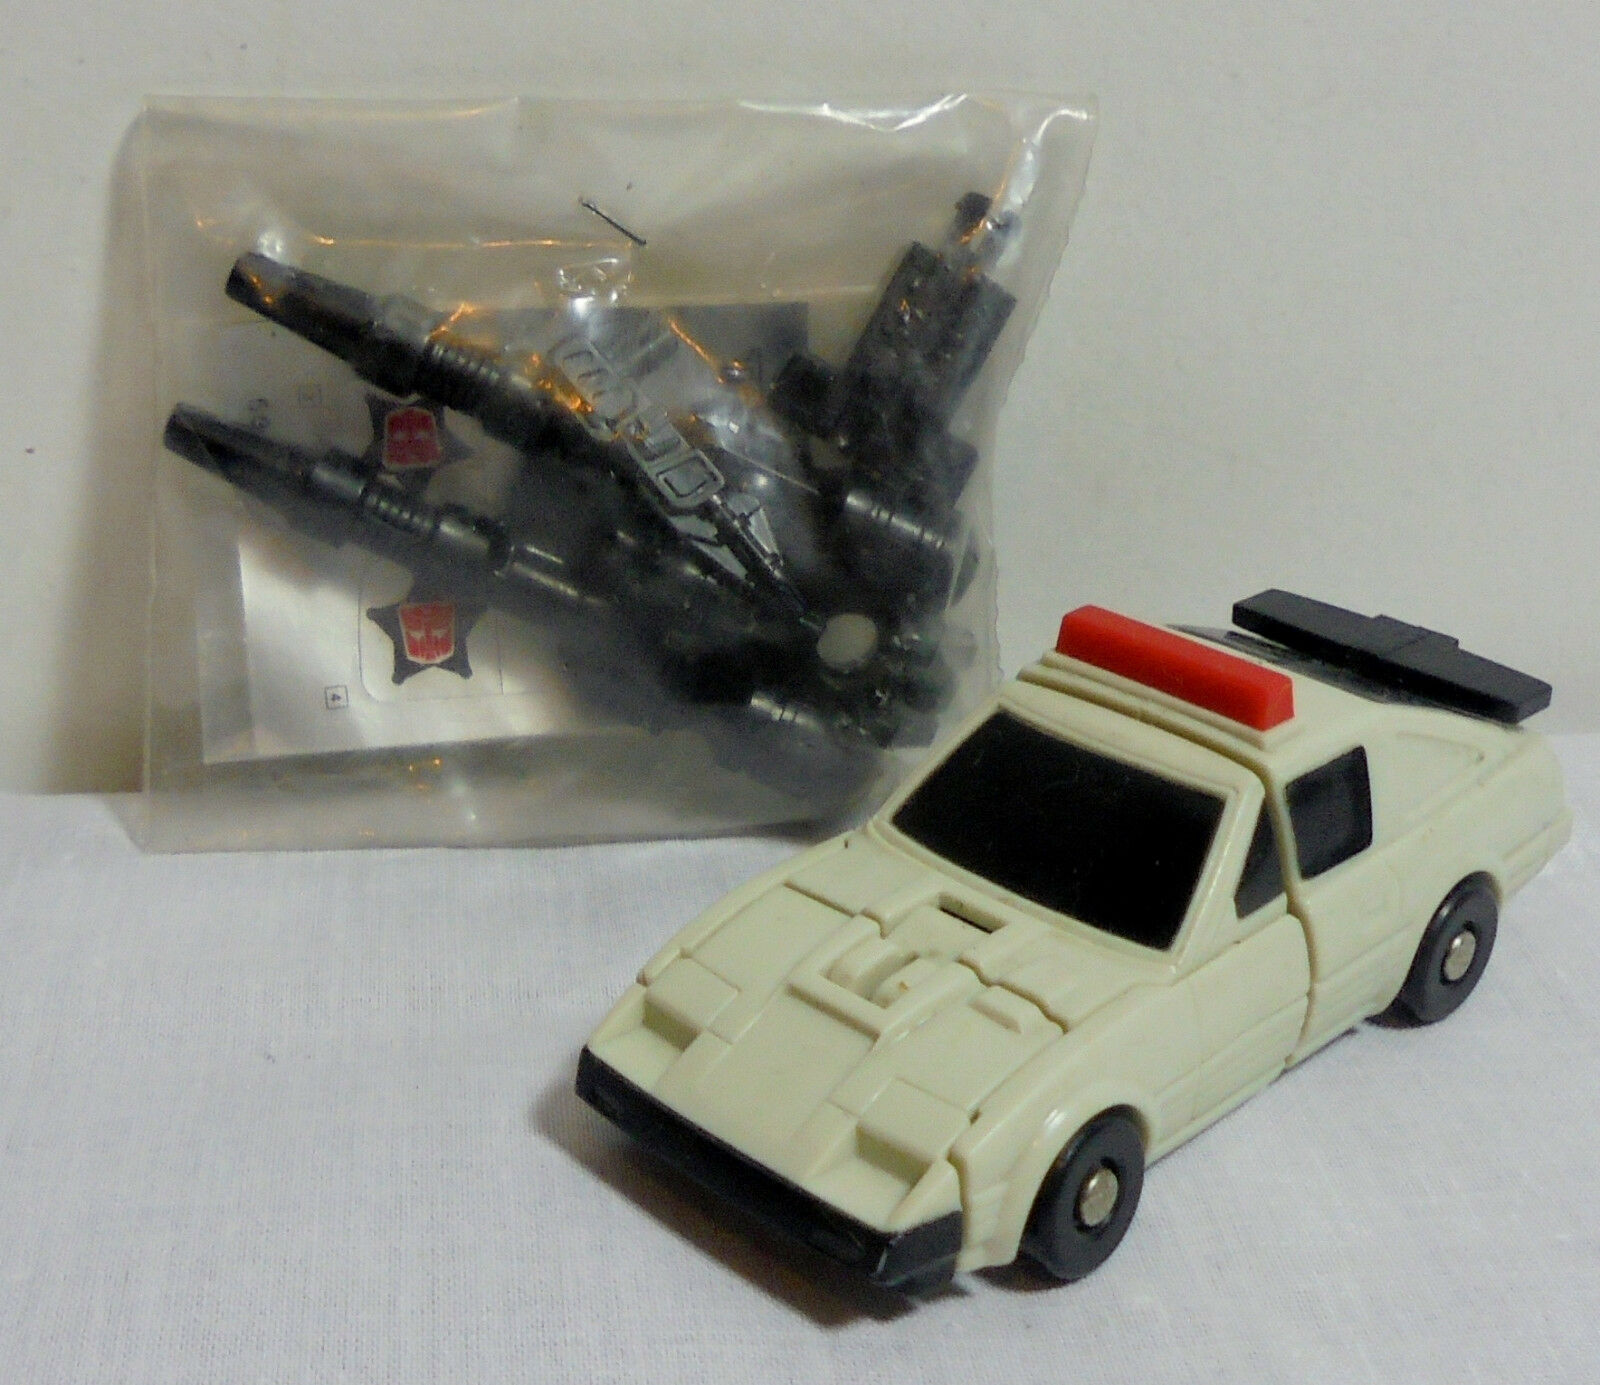 TRANSFORMERS G1 1986 EL GRECO STREETWISE G1 ROBOT FROM GREEK EASTER CANDLE